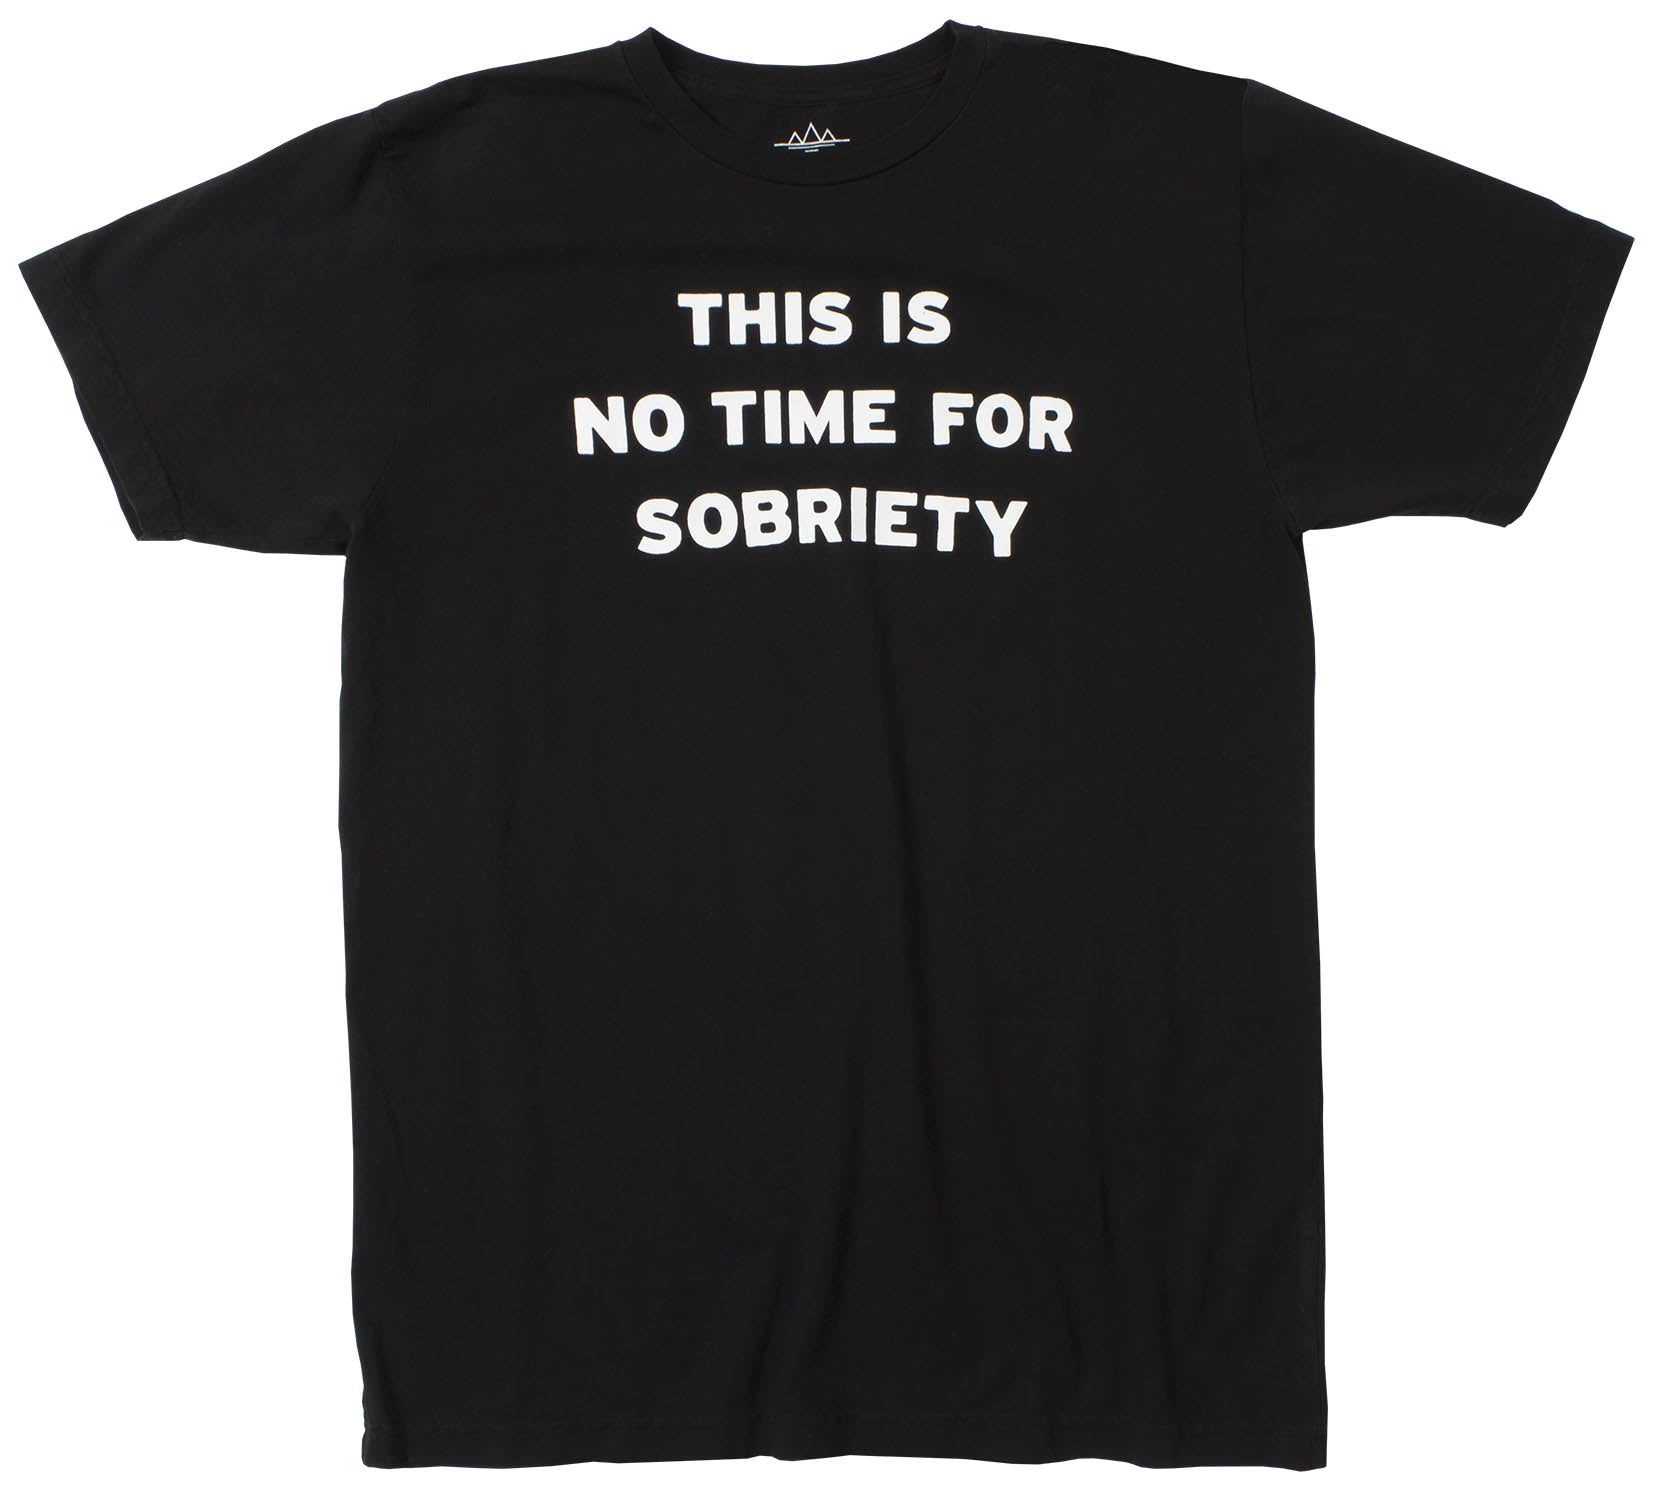 No Time For Sobriety Men's Funny Black Graphic Tee by Altru Apparel